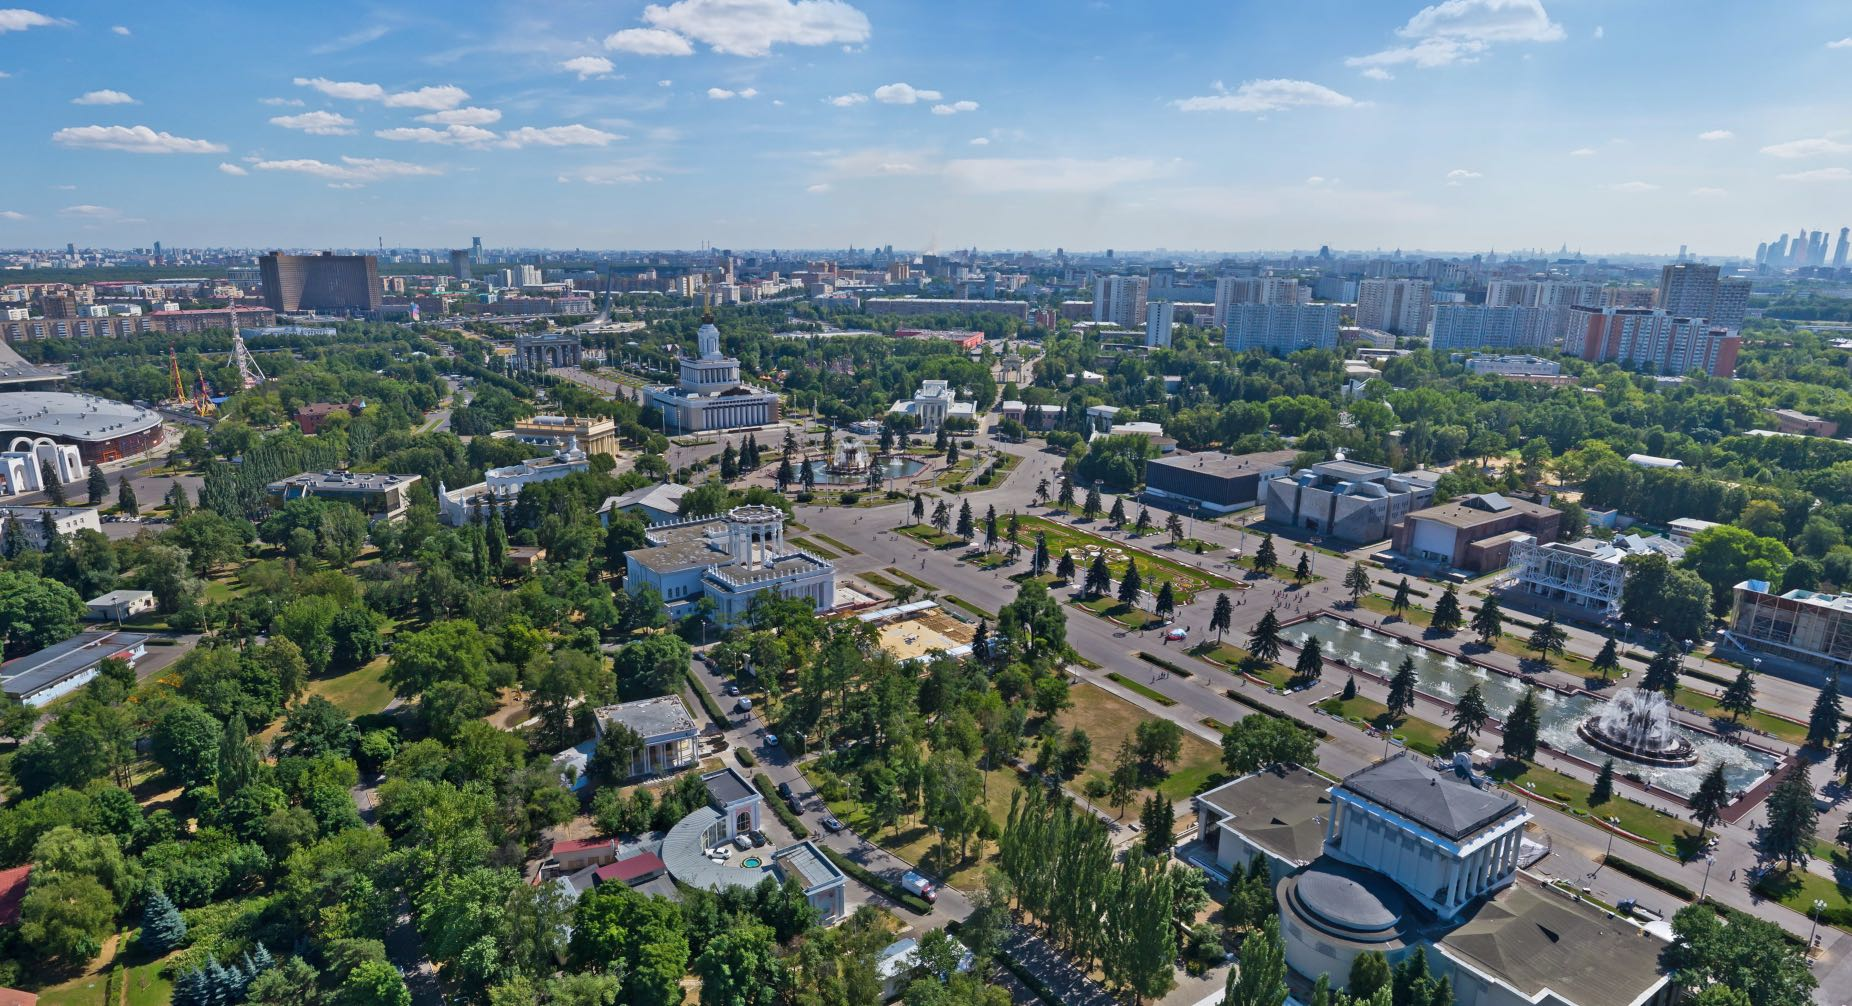 Aerial view VDNKh - VDNH - Featured image